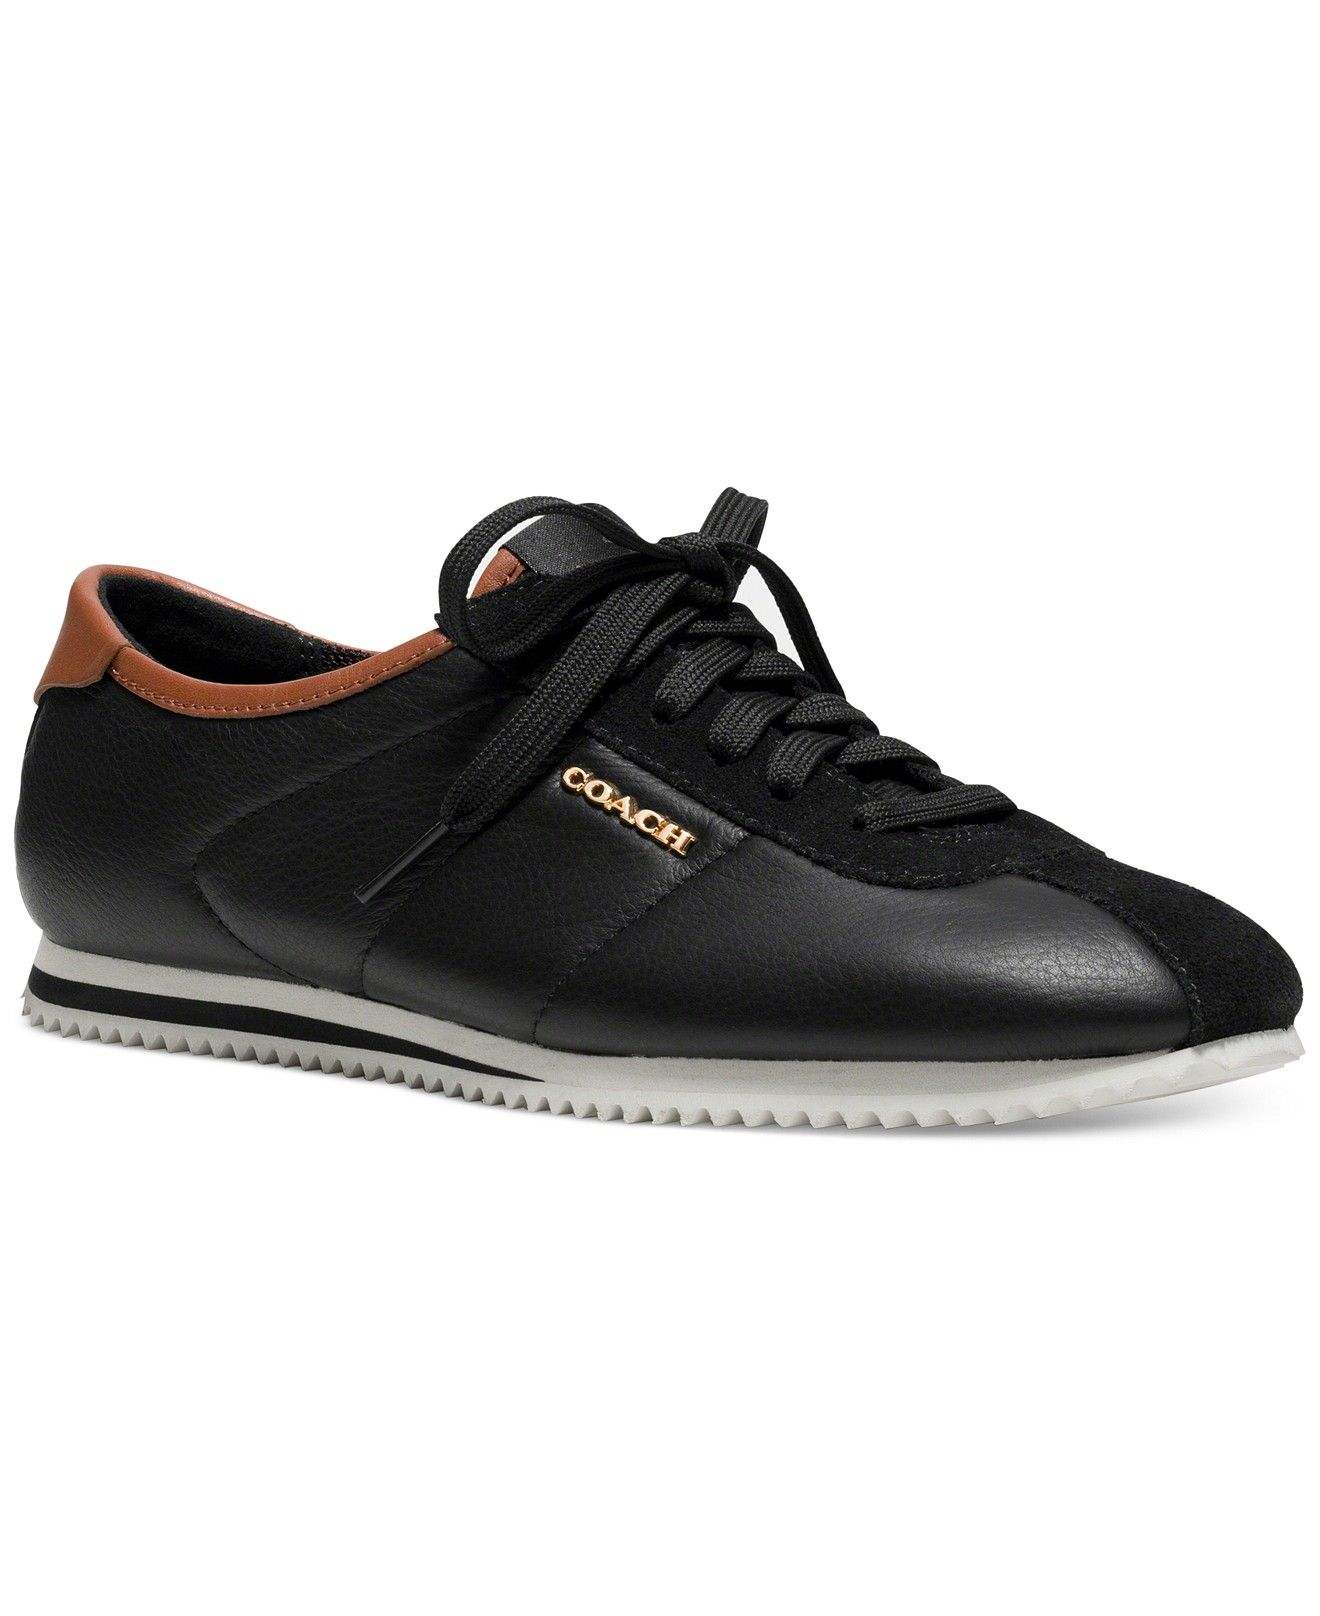 COACH Ivory Leather Sneakers - COACH